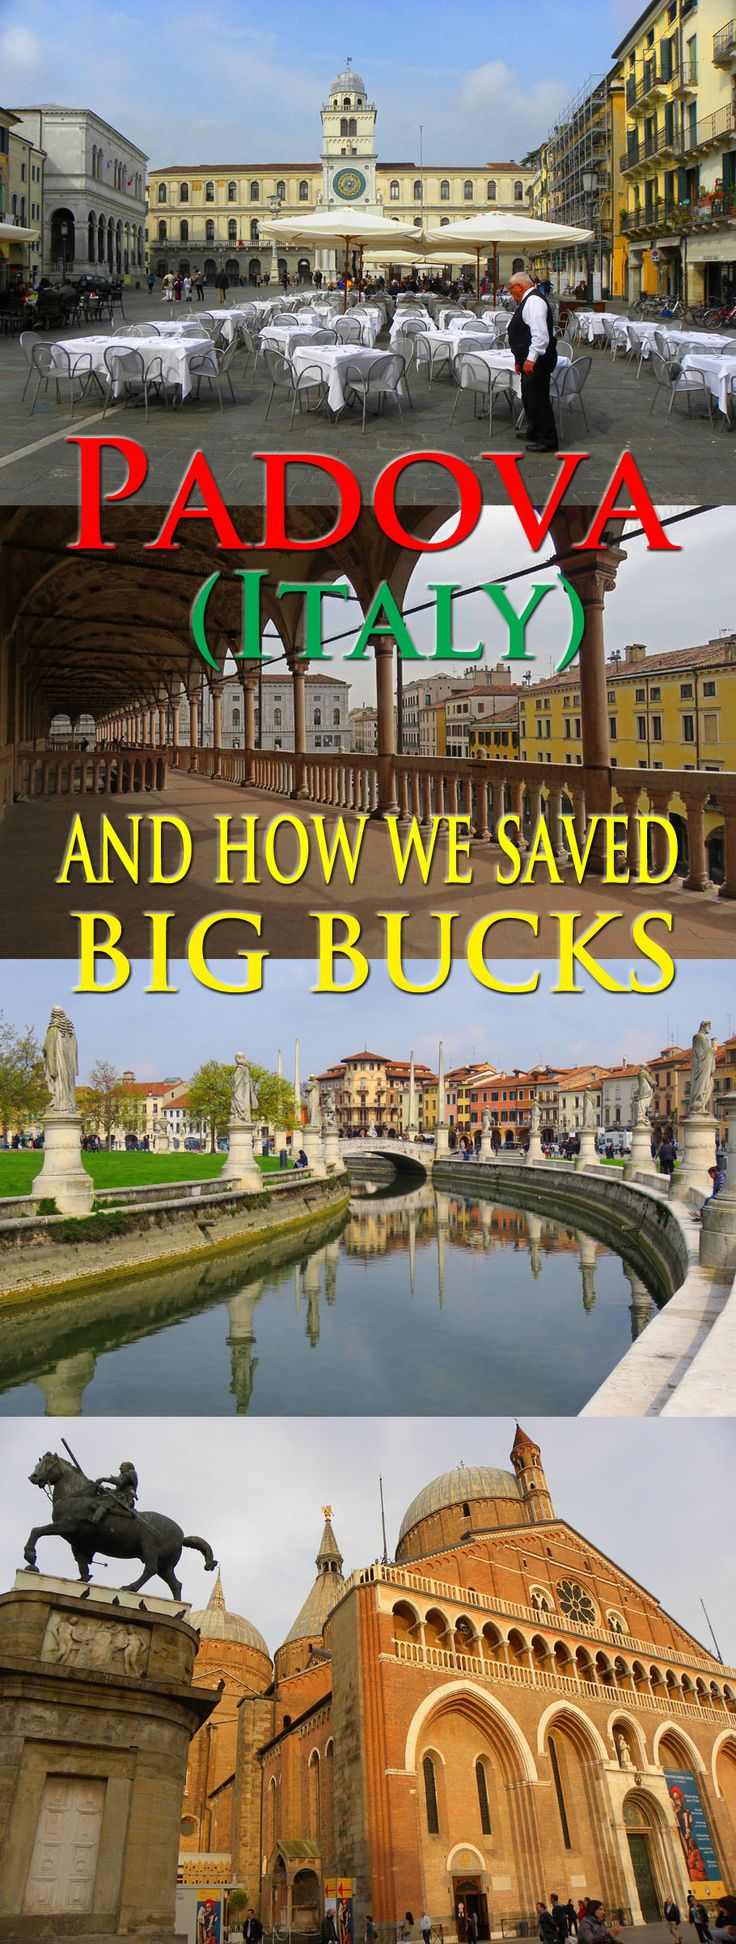 How we saved a lot of money using Padova (Padua) as a base in the Veneto region: http://bbqboy.net/padova-padua-italy-saved-big-bucks-airbnb-using-base-veneto-region/  #padova #padua #italy